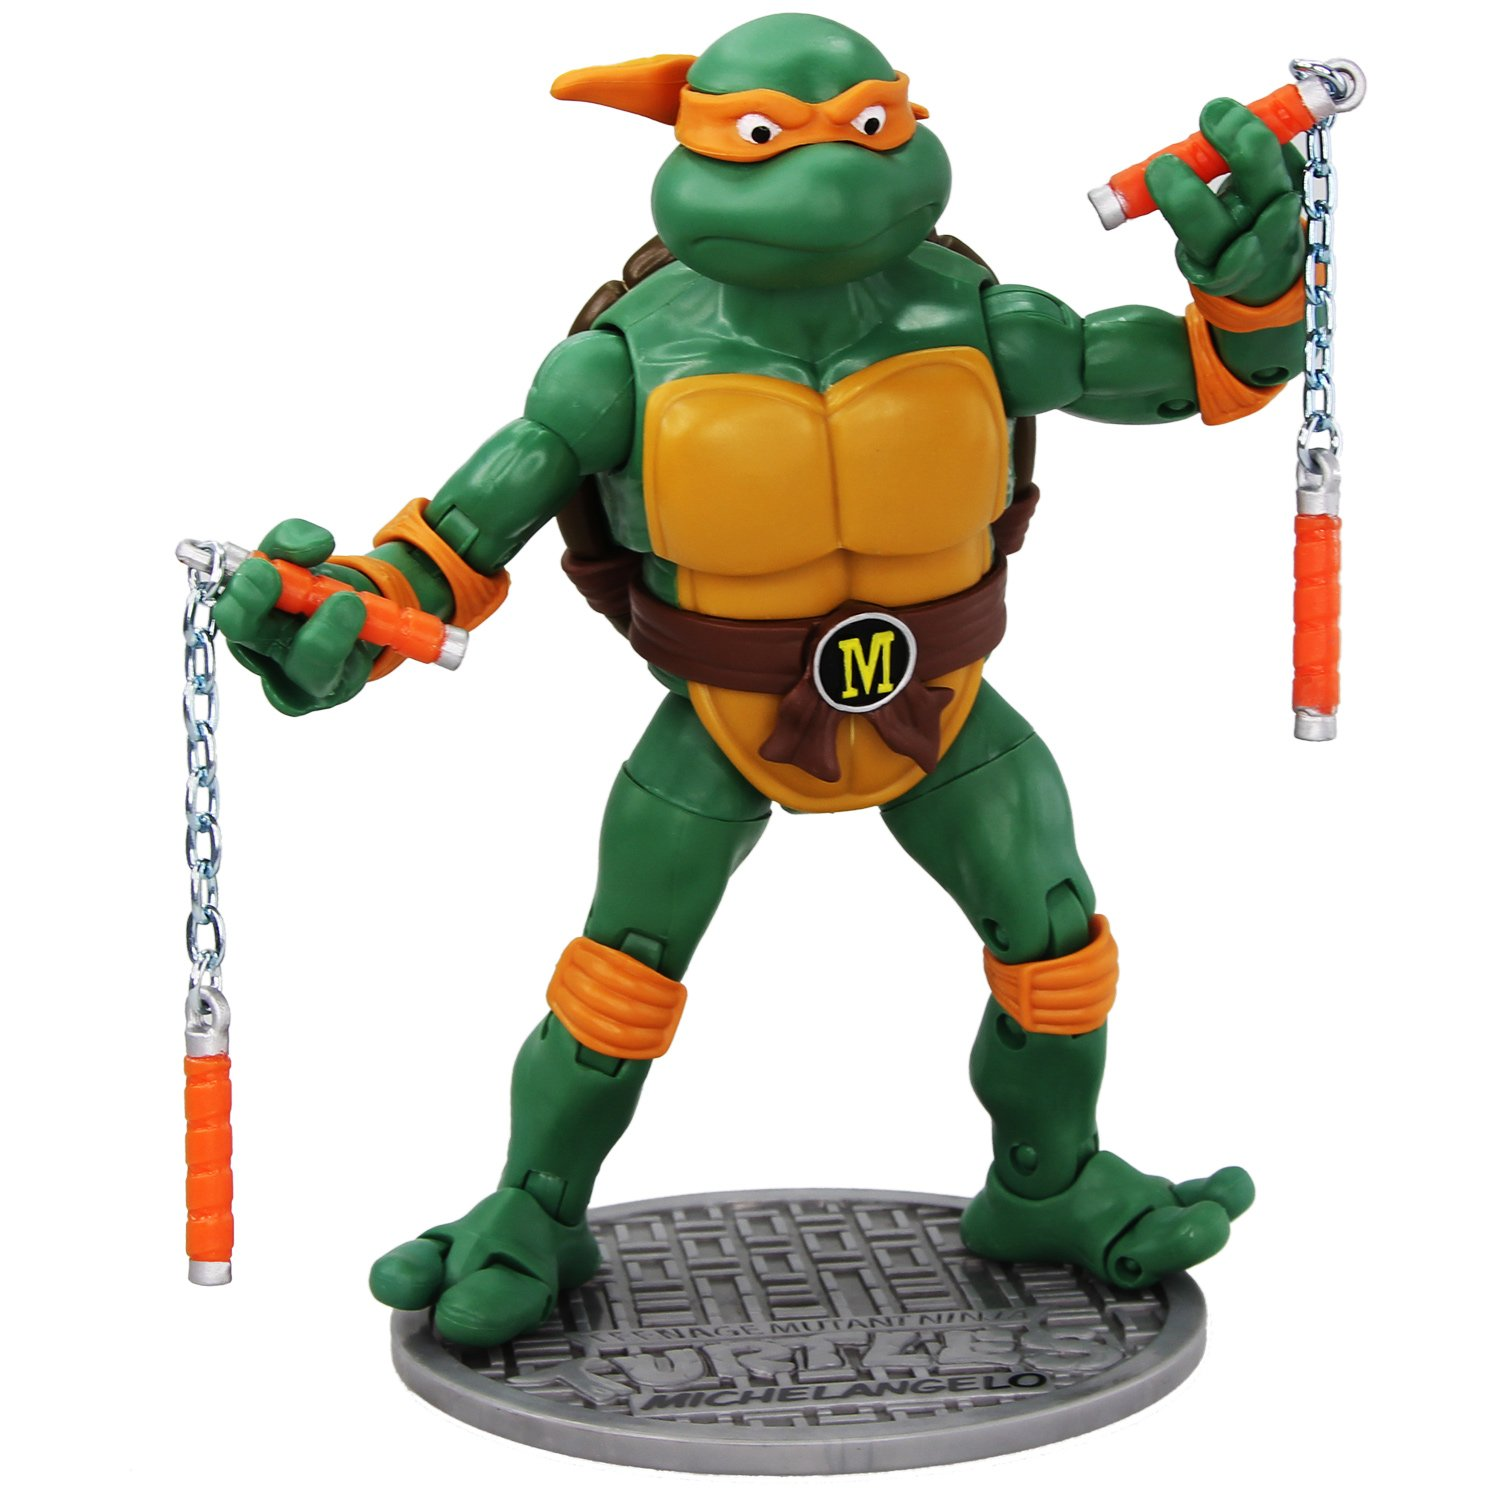 Teenage Mutant Ninja Turtles Classic Michelangelo Actionfigur (15 cm)